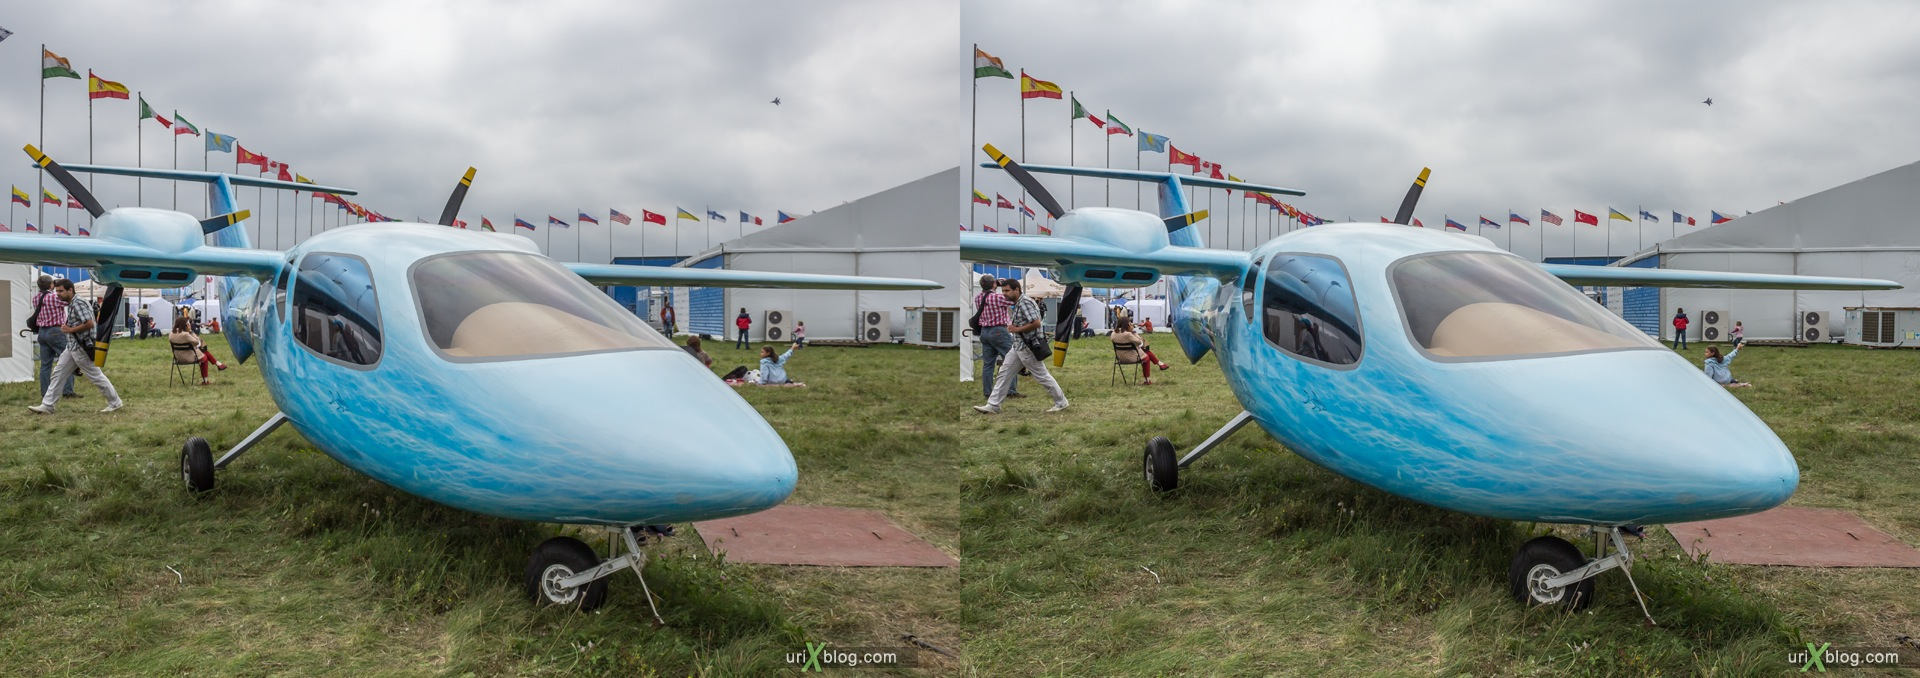 2013, MVEN-3 Murena (Moray), MAKS, International Aviation and Space Salon, Russia, Ramenskoye airfield, airplane, 3D, stereo pair, cross-eyed, crossview, cross view stereo pair, stereoscopic